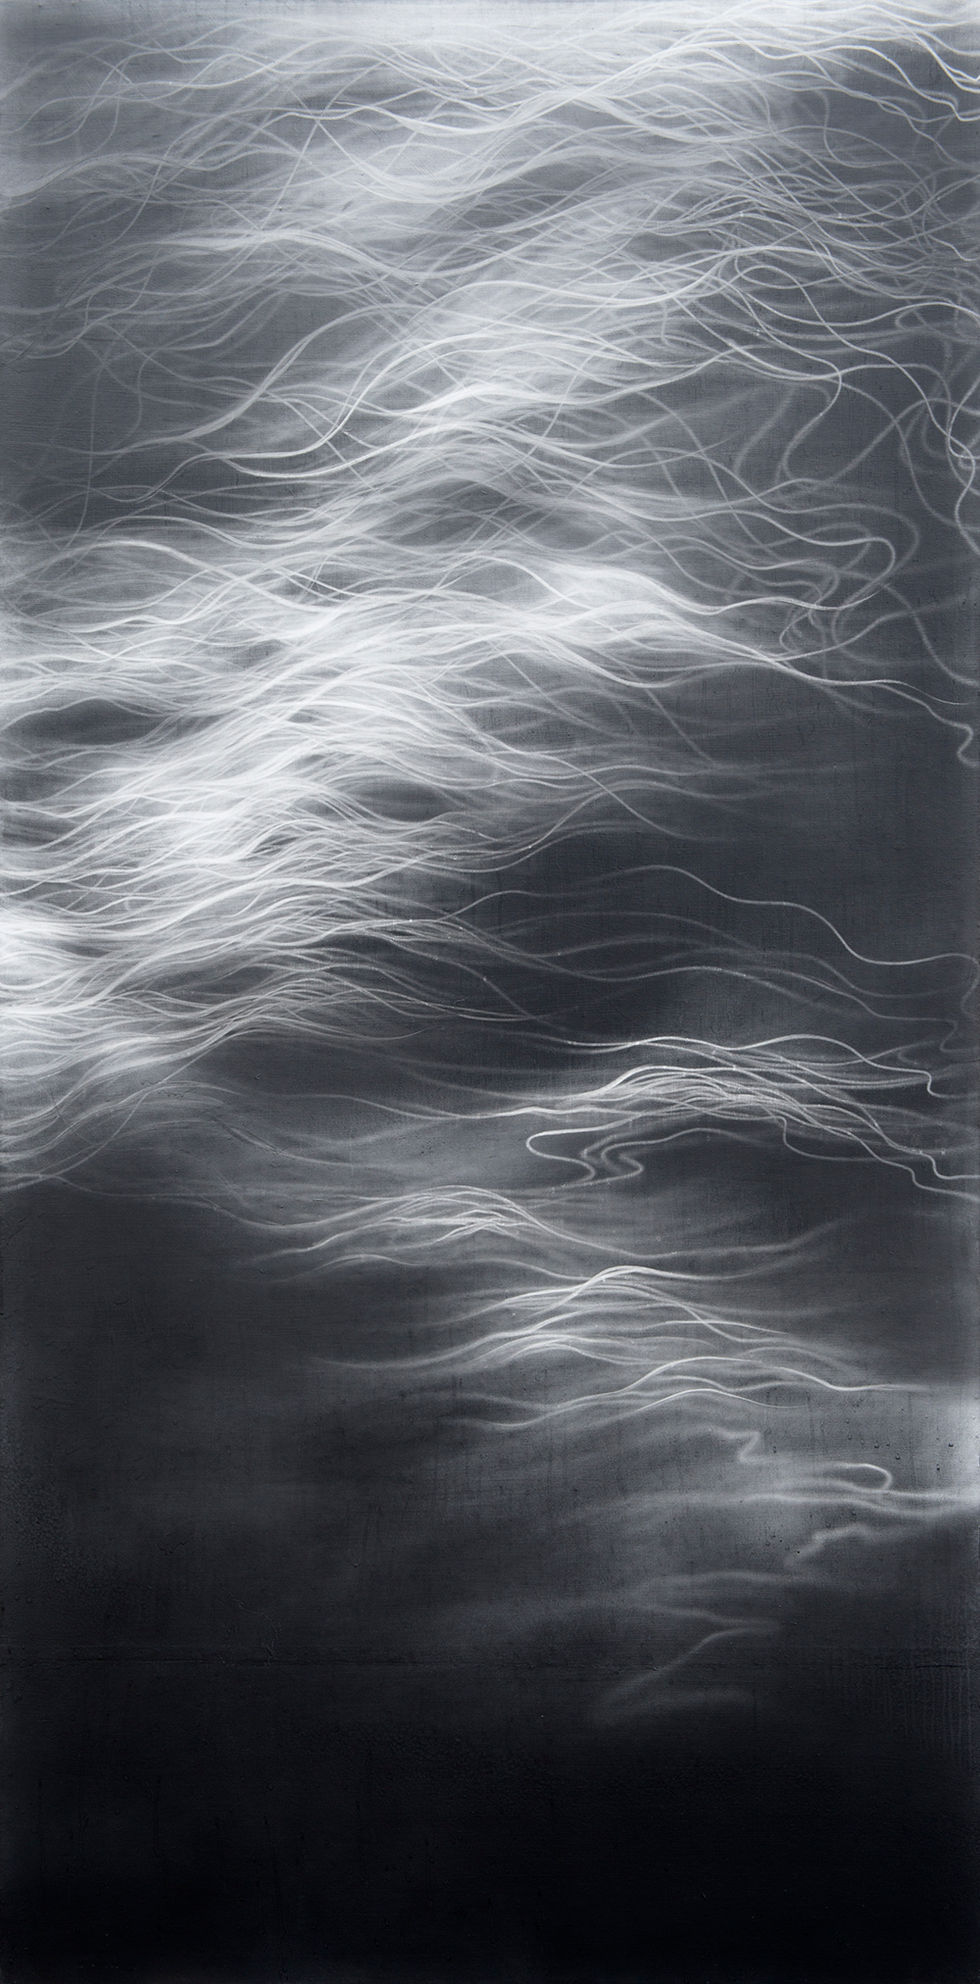 Waterscape 1329, 244x122cm,  Graphite, water-drawing on Mulberry paper, 2013